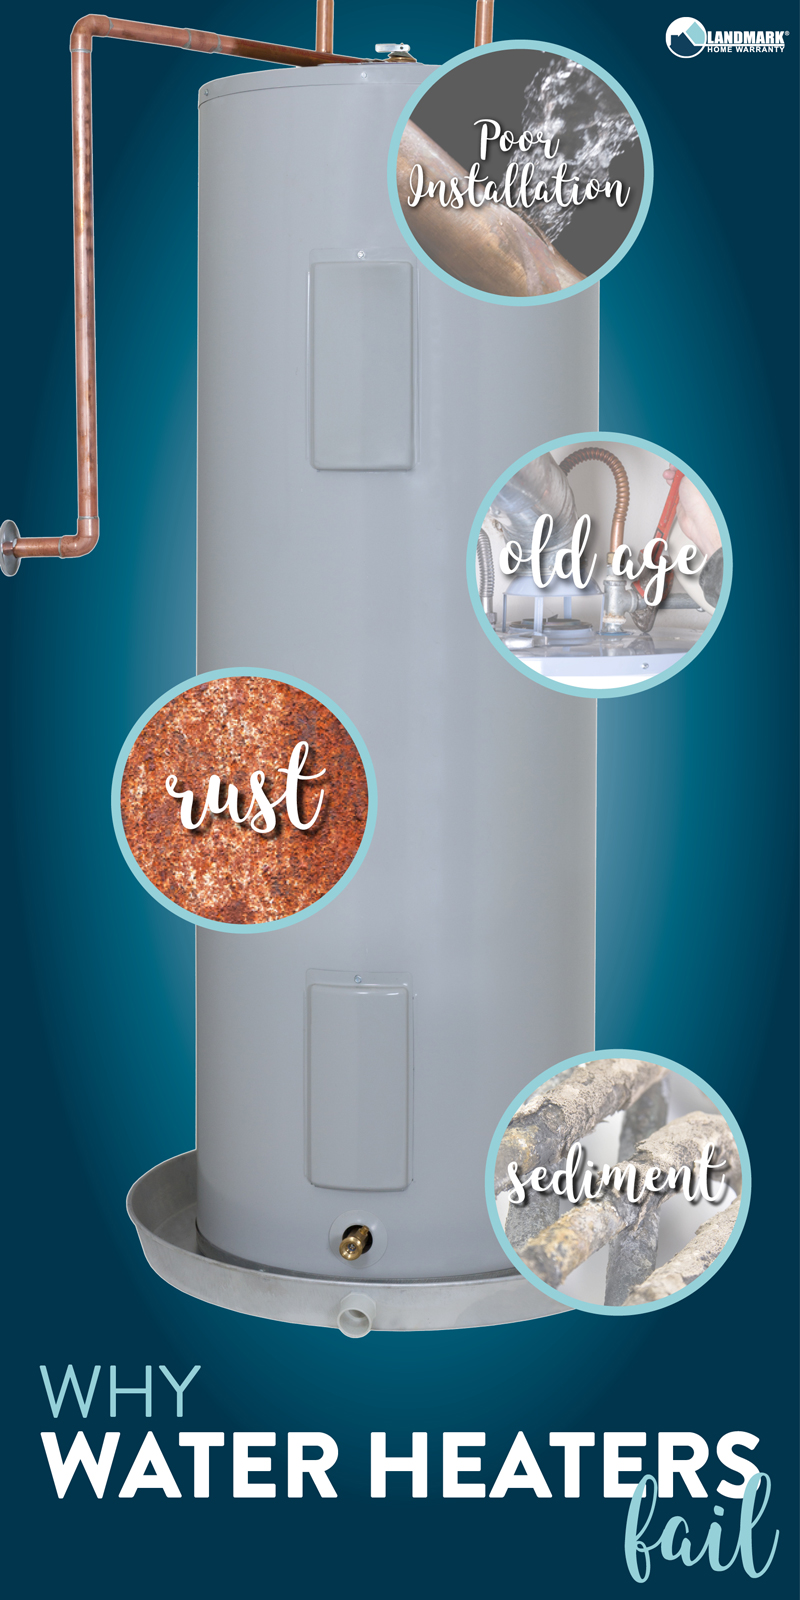 Top reasons why a water heater fails.